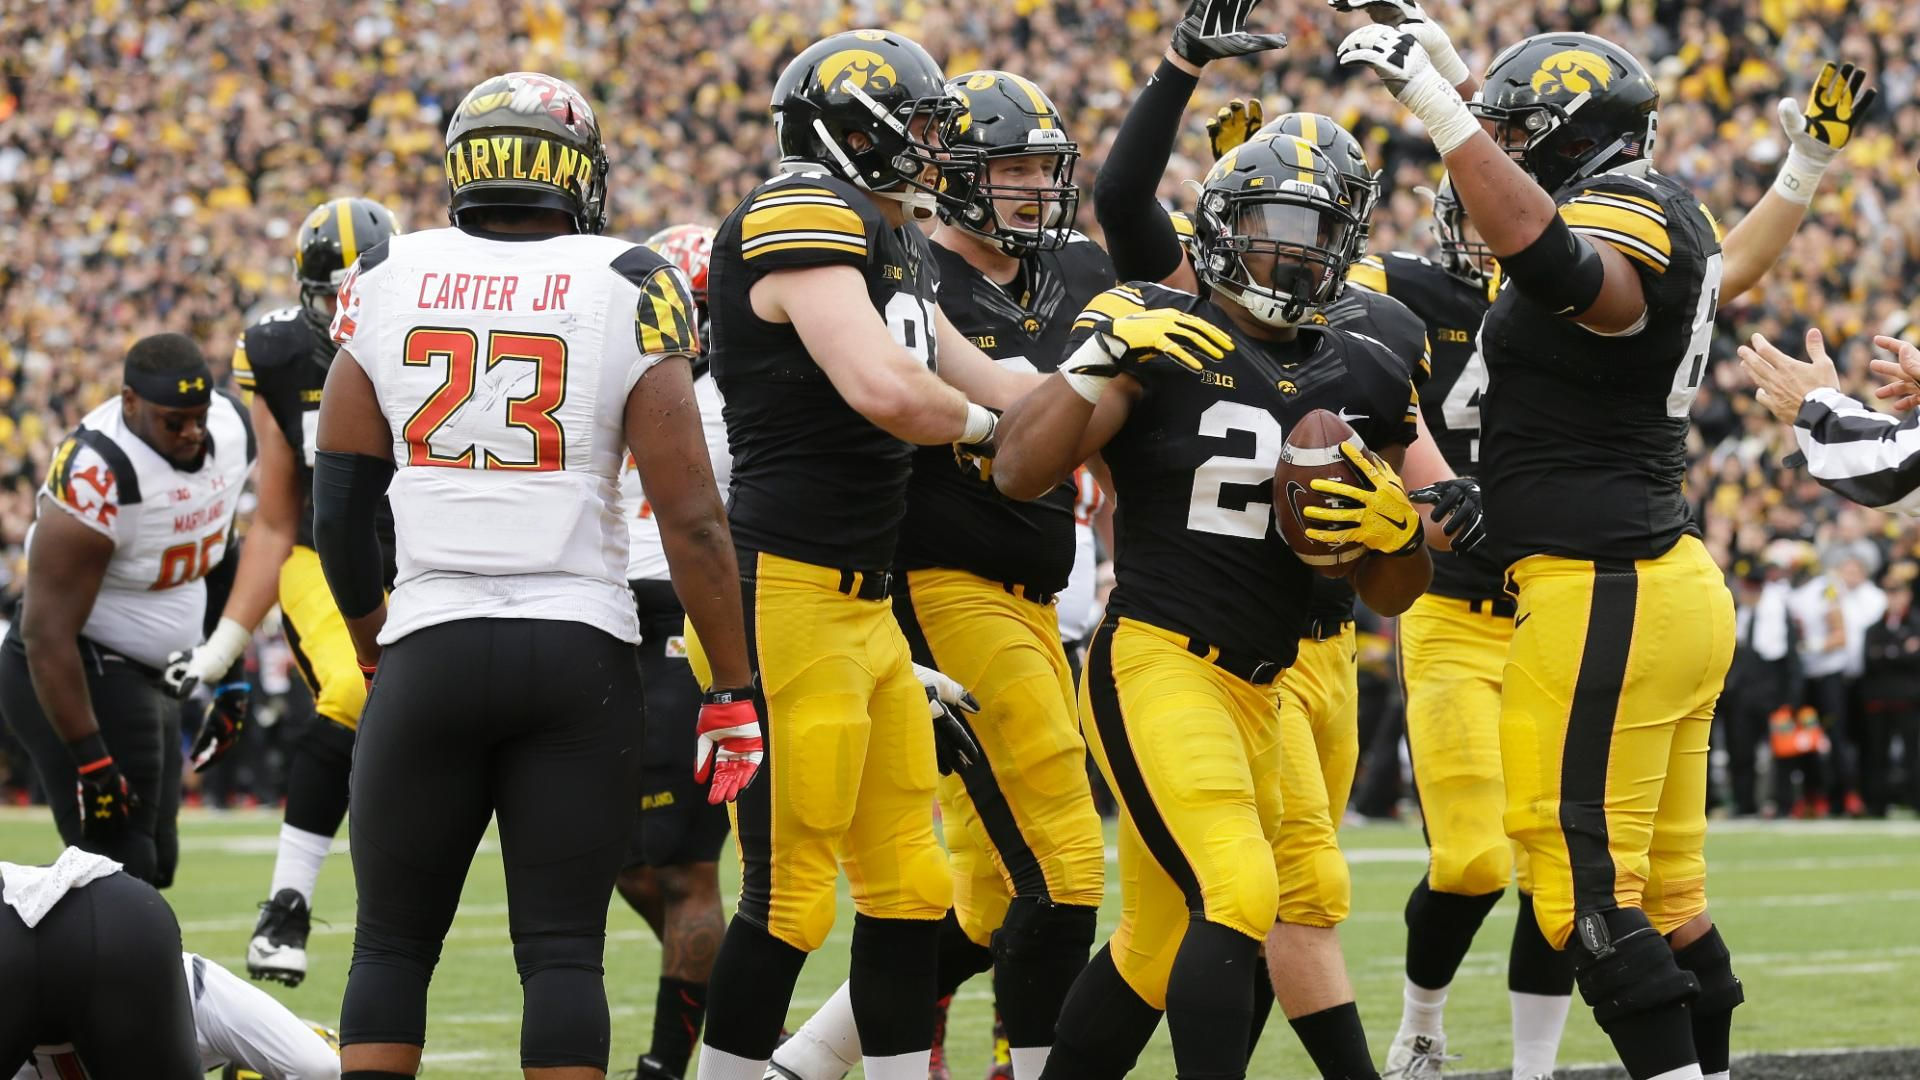 Iowa cruises past Maryland, moves to 8-0 - ESPN Video